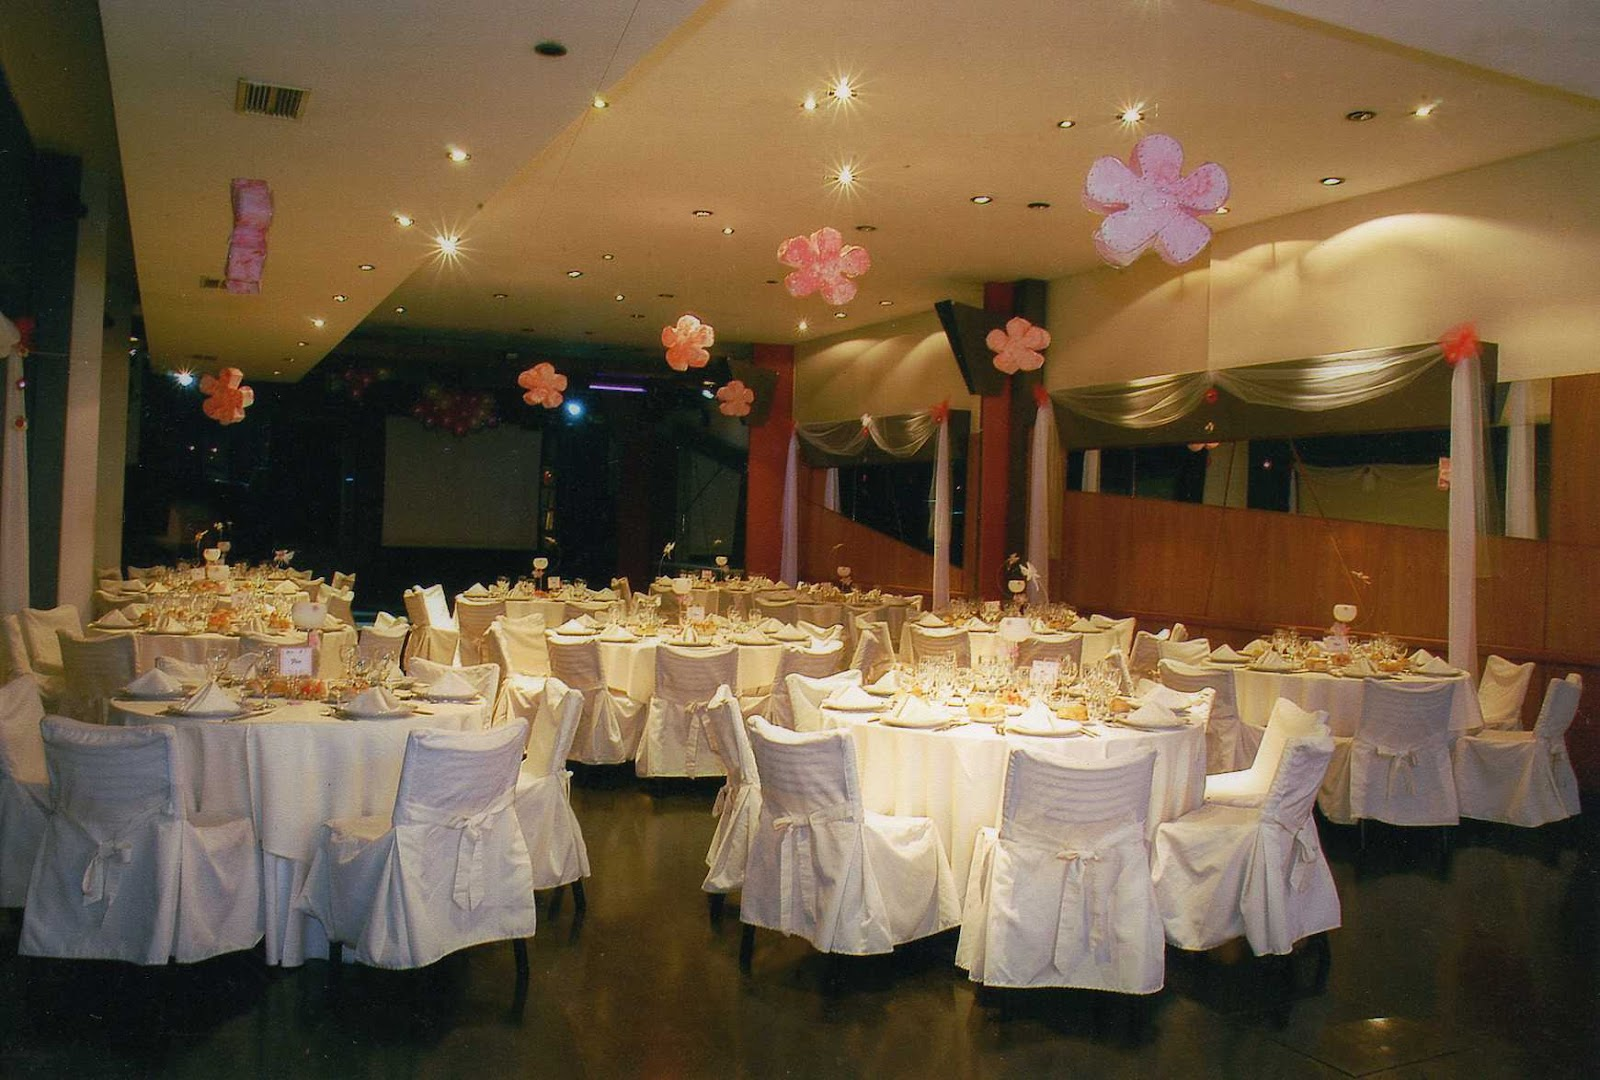 Faar eventos - Decoracion para salones ...